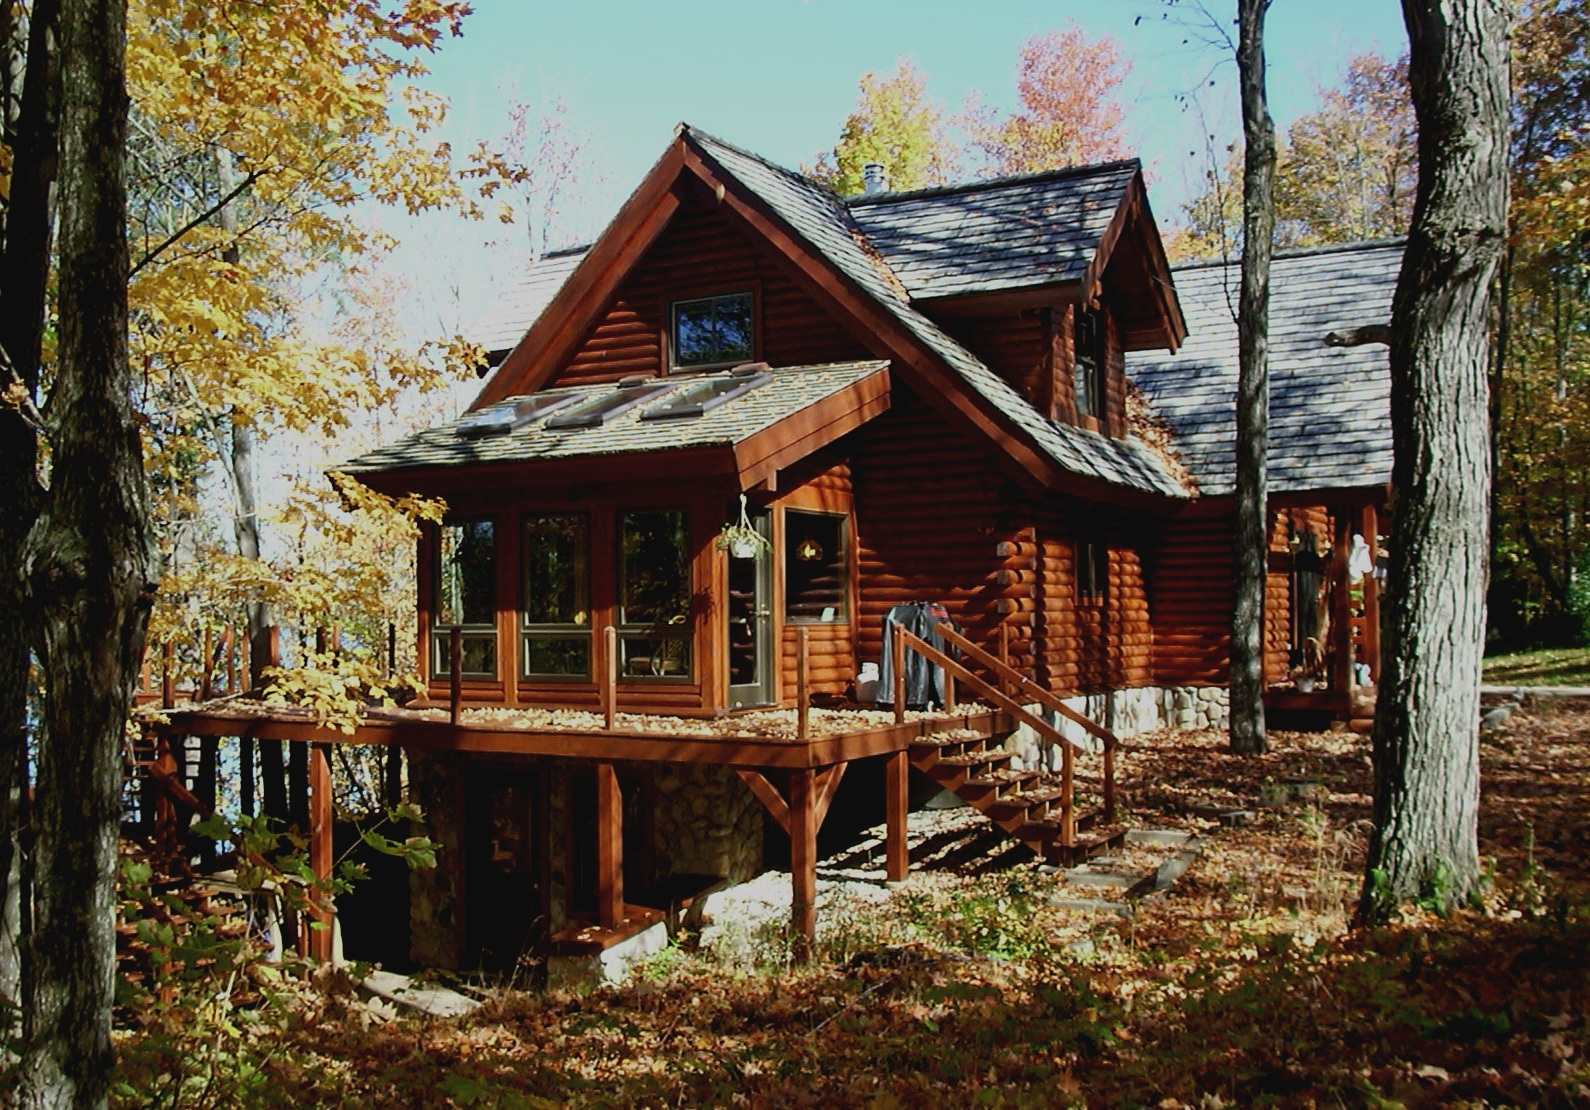 Why a Cedar Log Home - • Custom designing from a basic cabin to an elegant home eliminates architect fees.• Having our own milling operation and construction company insures maximum quality and flexibility.• Because we are a local contractor, it will be easy to assure you of our outstanding reputation.• Massive timber beams used in Loft & Roof system.• Elegance & durability of Northern White Cedar walls.• Tongue & groove cedar paneling and cedar shakes available.• Variety of dormers and covered porches to choose from.• Model home available for your inspection.